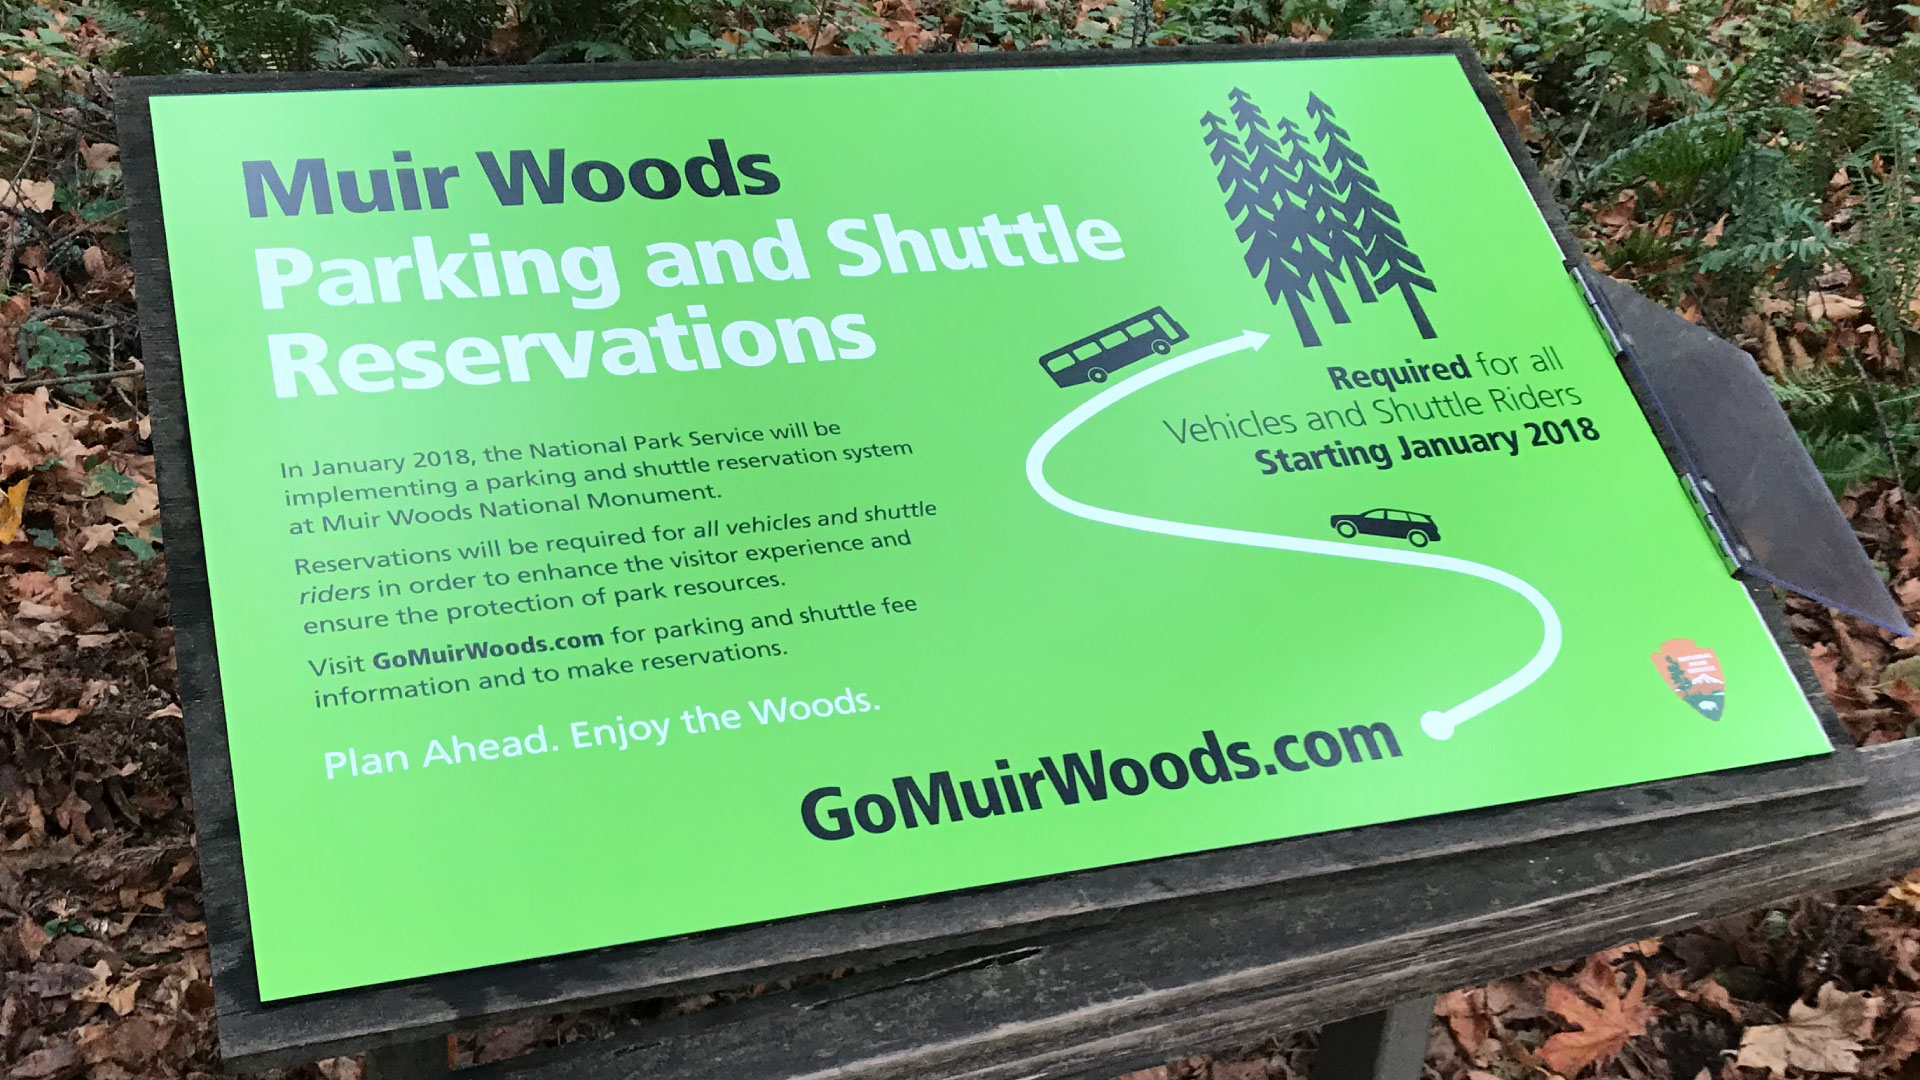 Sign panel providing information to park visitors about the parking and shuttle reservation system